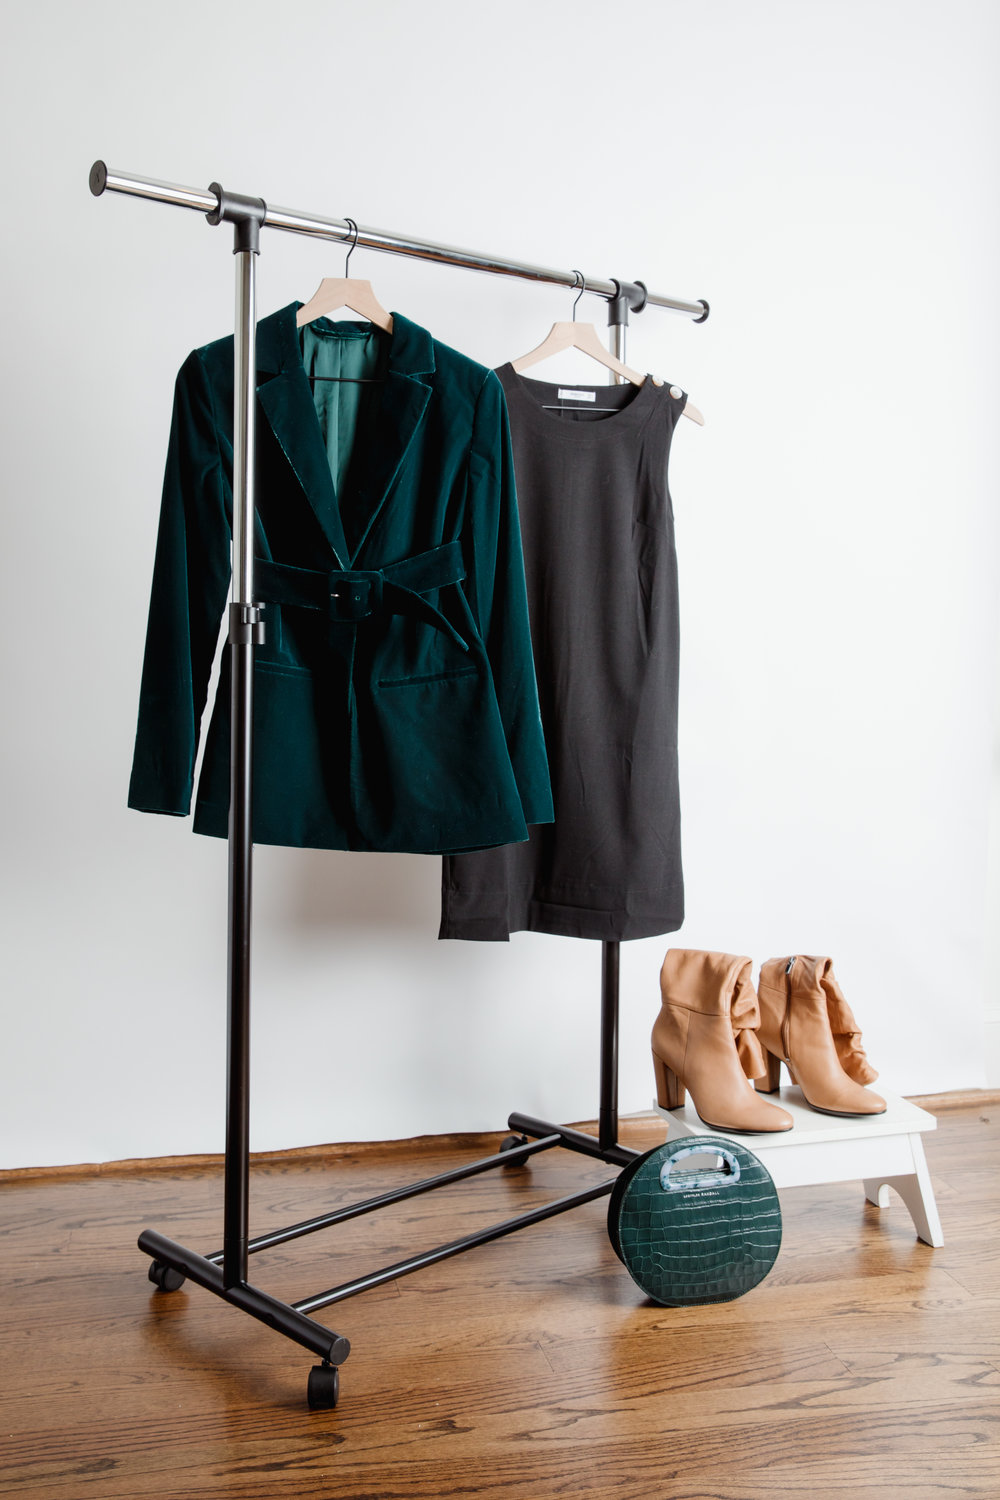 Get the look - Dress - Everlane, Nordstrom or LoftBlazer - Nordstrom, Gap or Ann TaylorBoots - Ecco, Nordstrom or Sam EdlemanBag - Bloomingdales, Article&, Nordstrom or Bloomingdales